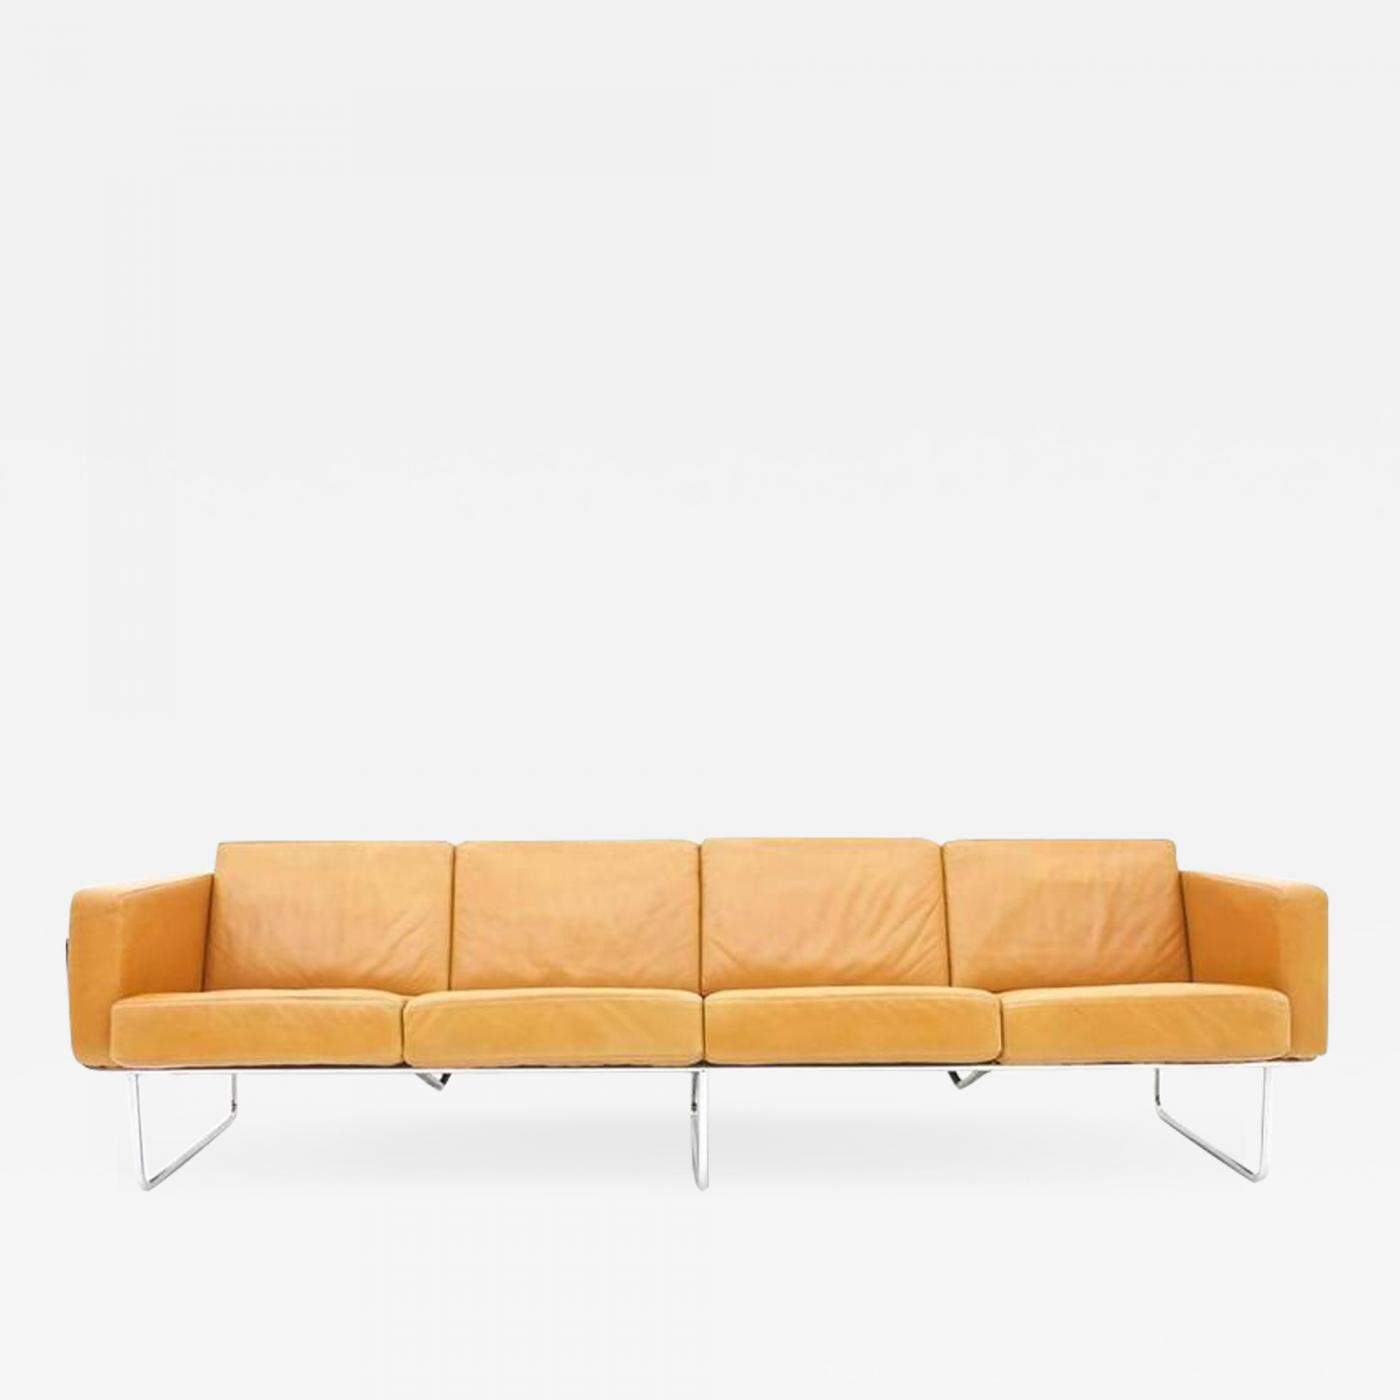 Strässle - Rare Four-Seat Leather Sofa by Hans Eichenberger for ...